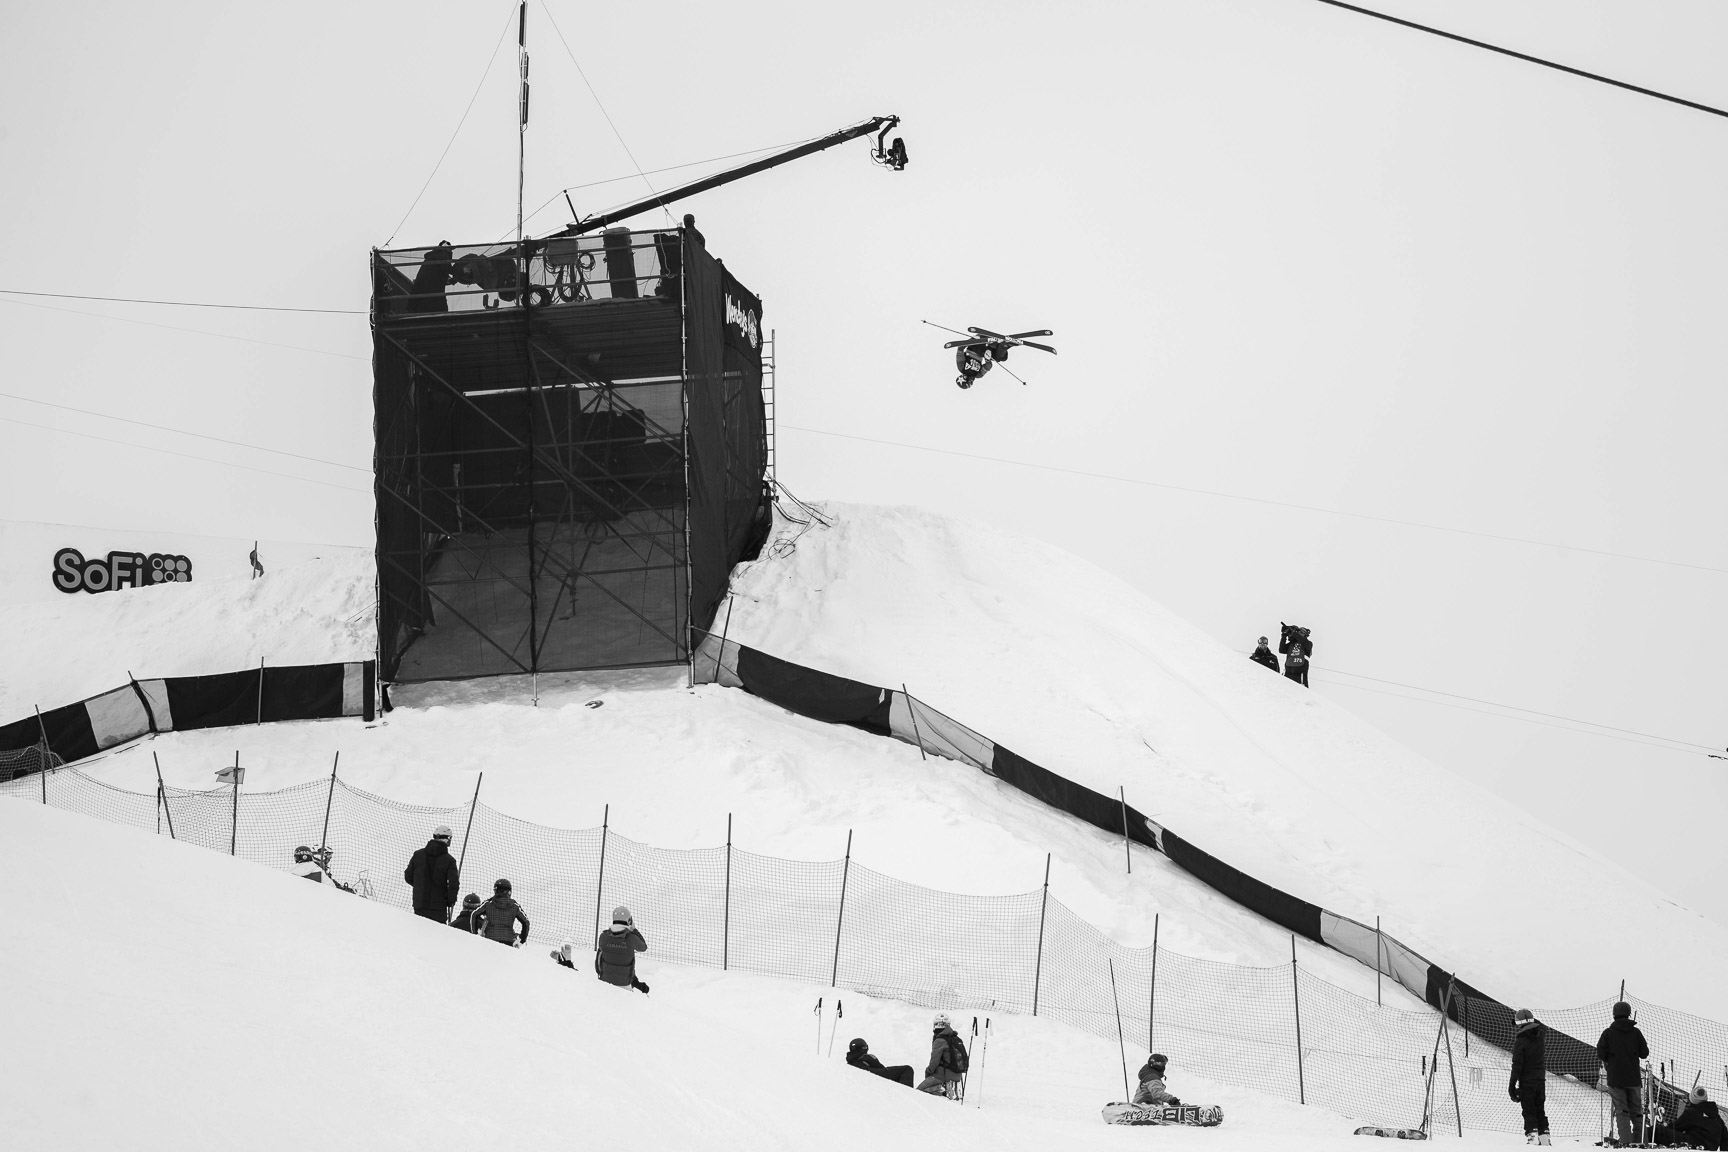 Alex Hall, Men's Ski Slopestyle